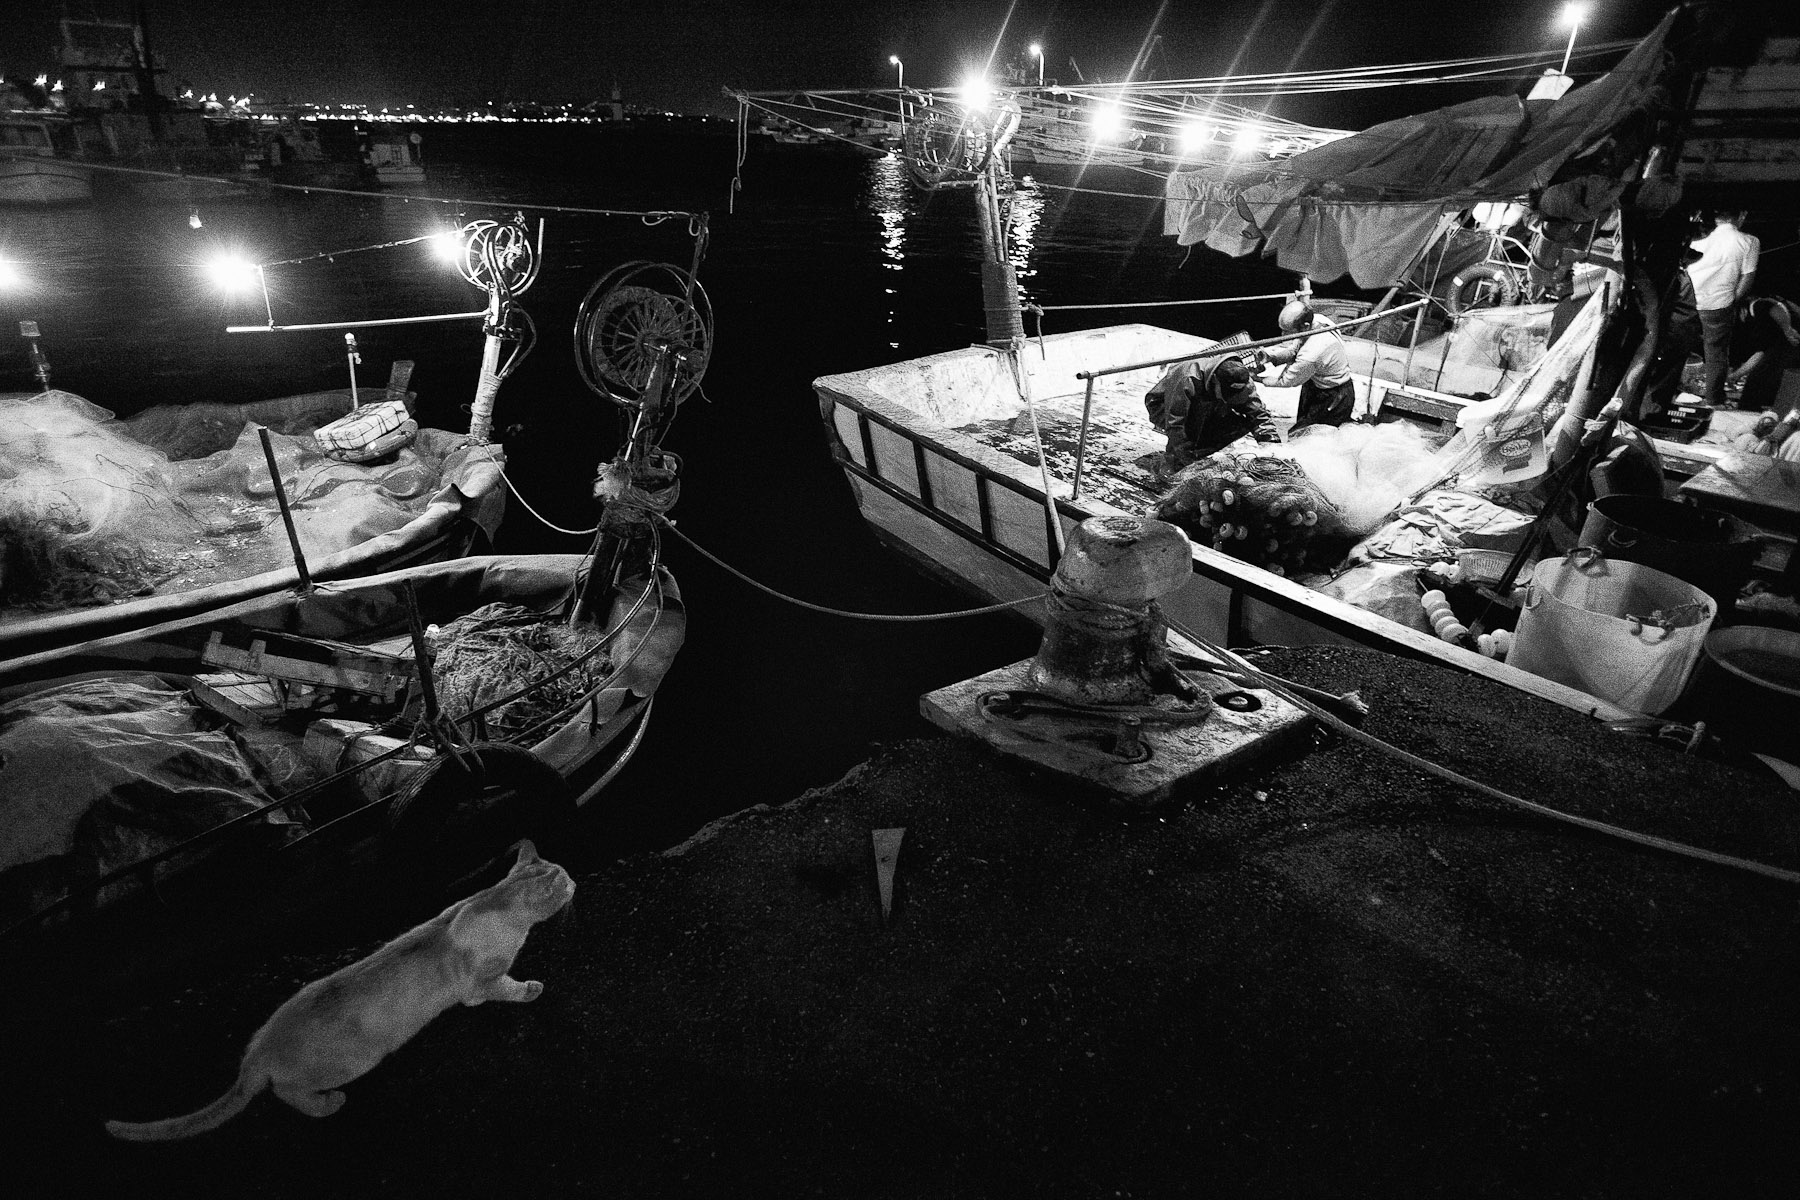 At six or seven in the morning, both boats return to the dock in Kumkapi district of Istanbul, just next to the distribution bazaar. Awaited by seagulls and an occasional cat. The bazaar is full by then.